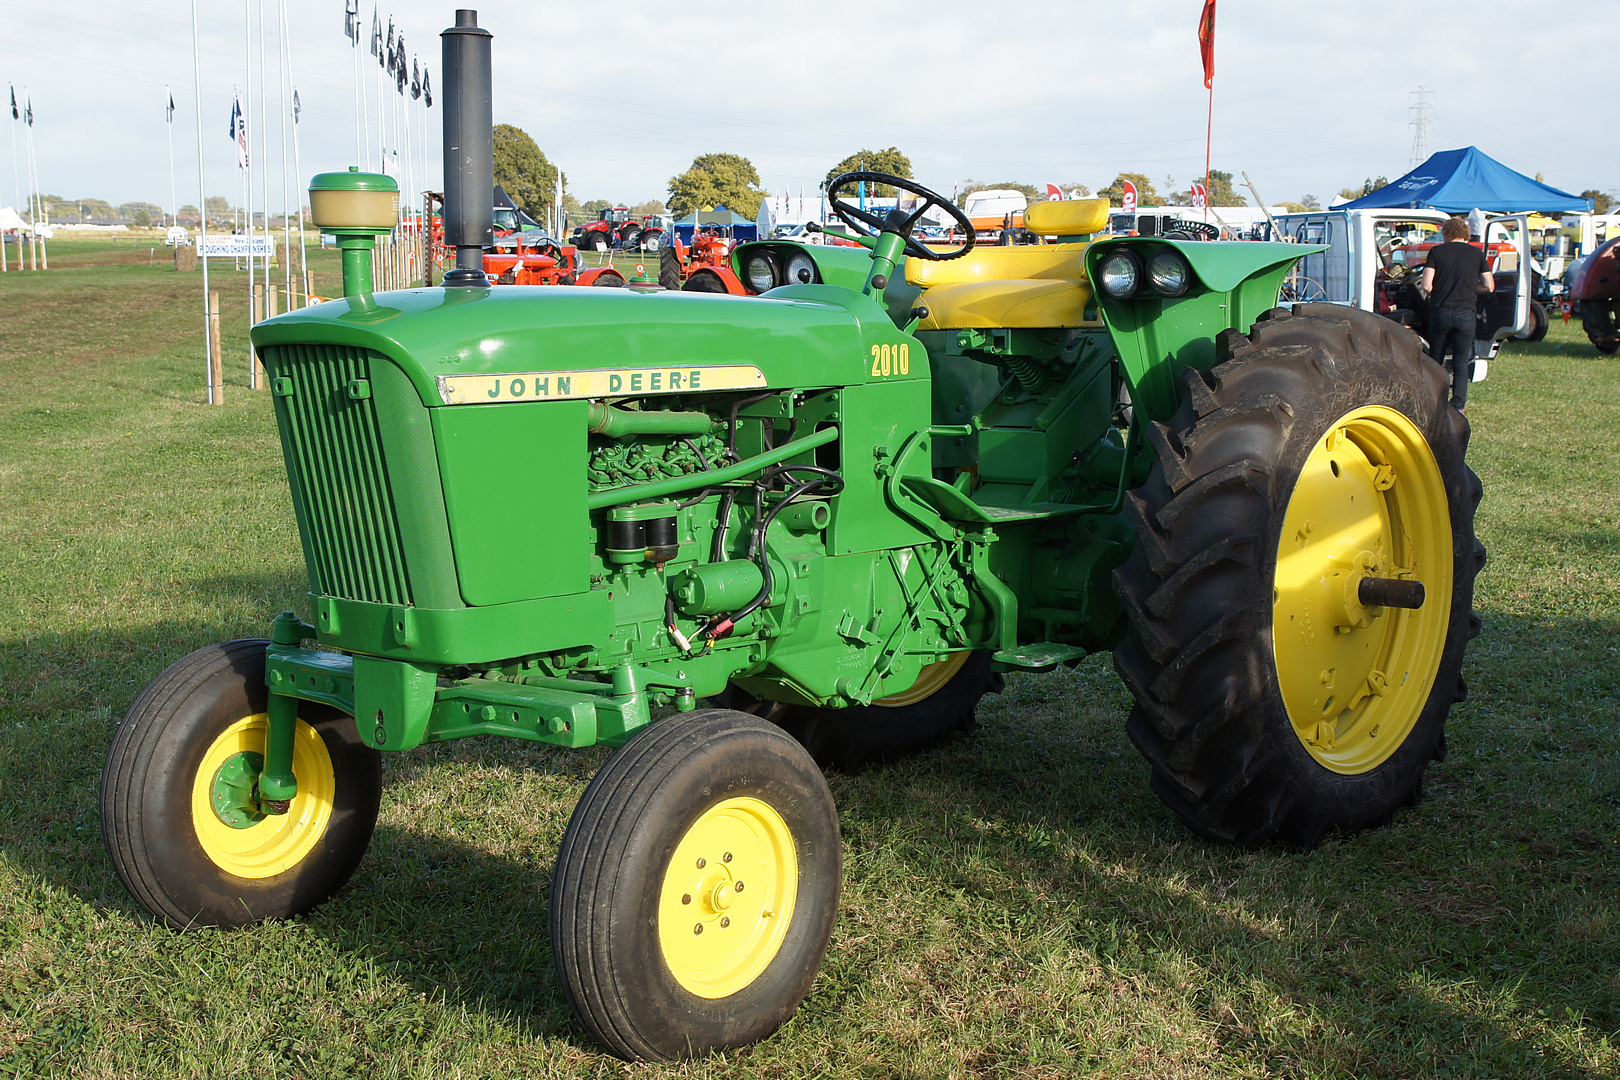 John Deere 2010 Tractor. - a photo on Flickriver